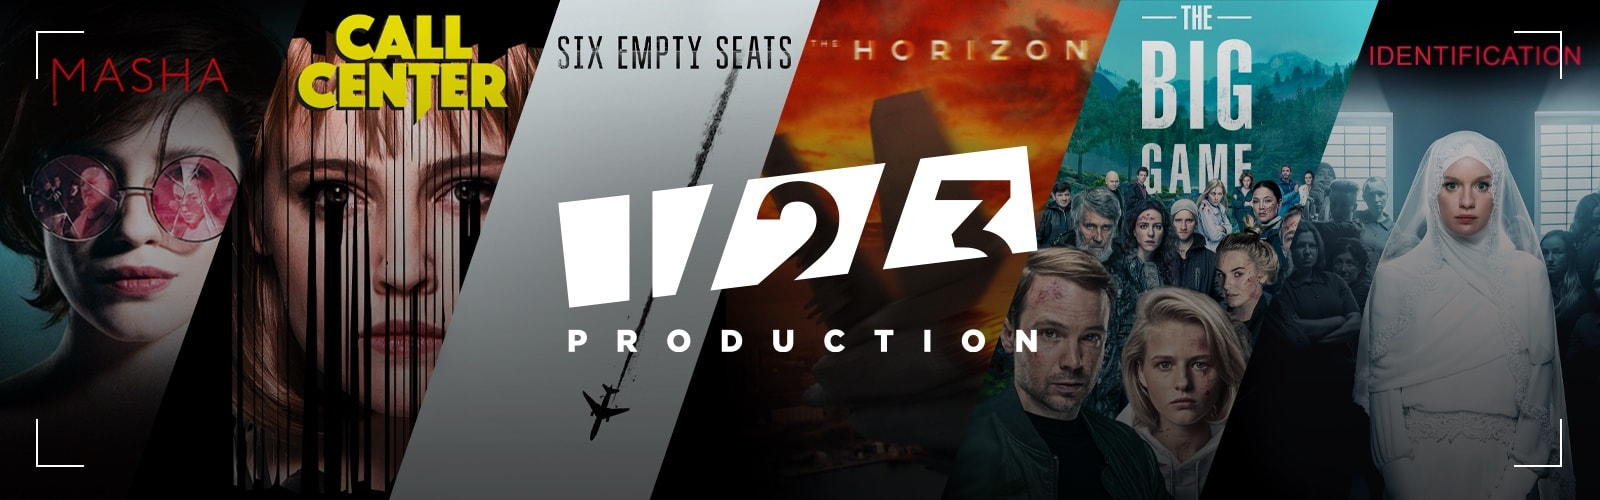 1-2-3 Productions